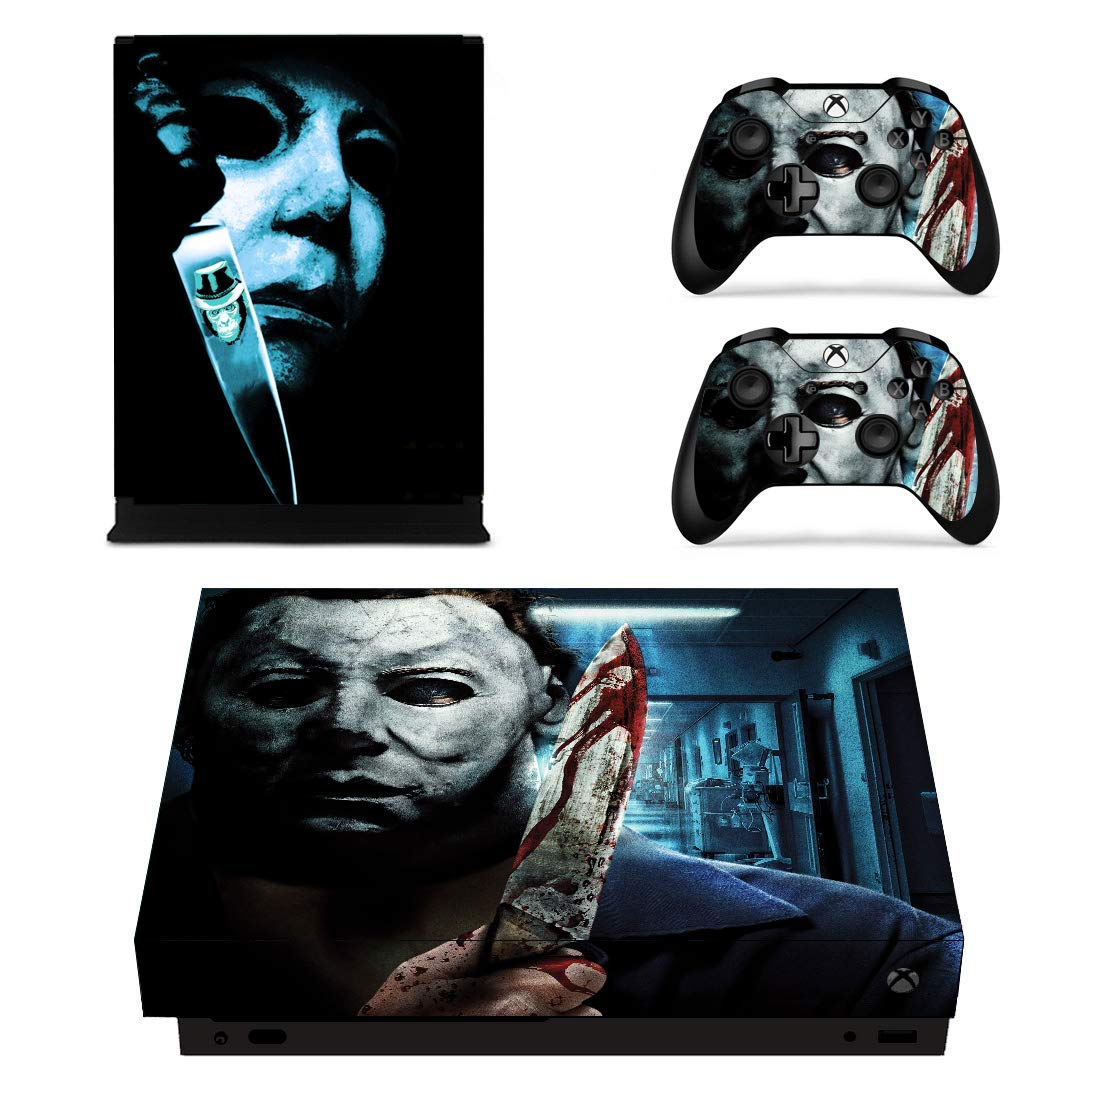 Xbox One X Camo 4 Skin Sticker Console Decal Vinyl Xbox Controller Video Game Accessories Faceplates, Decals & Stickers